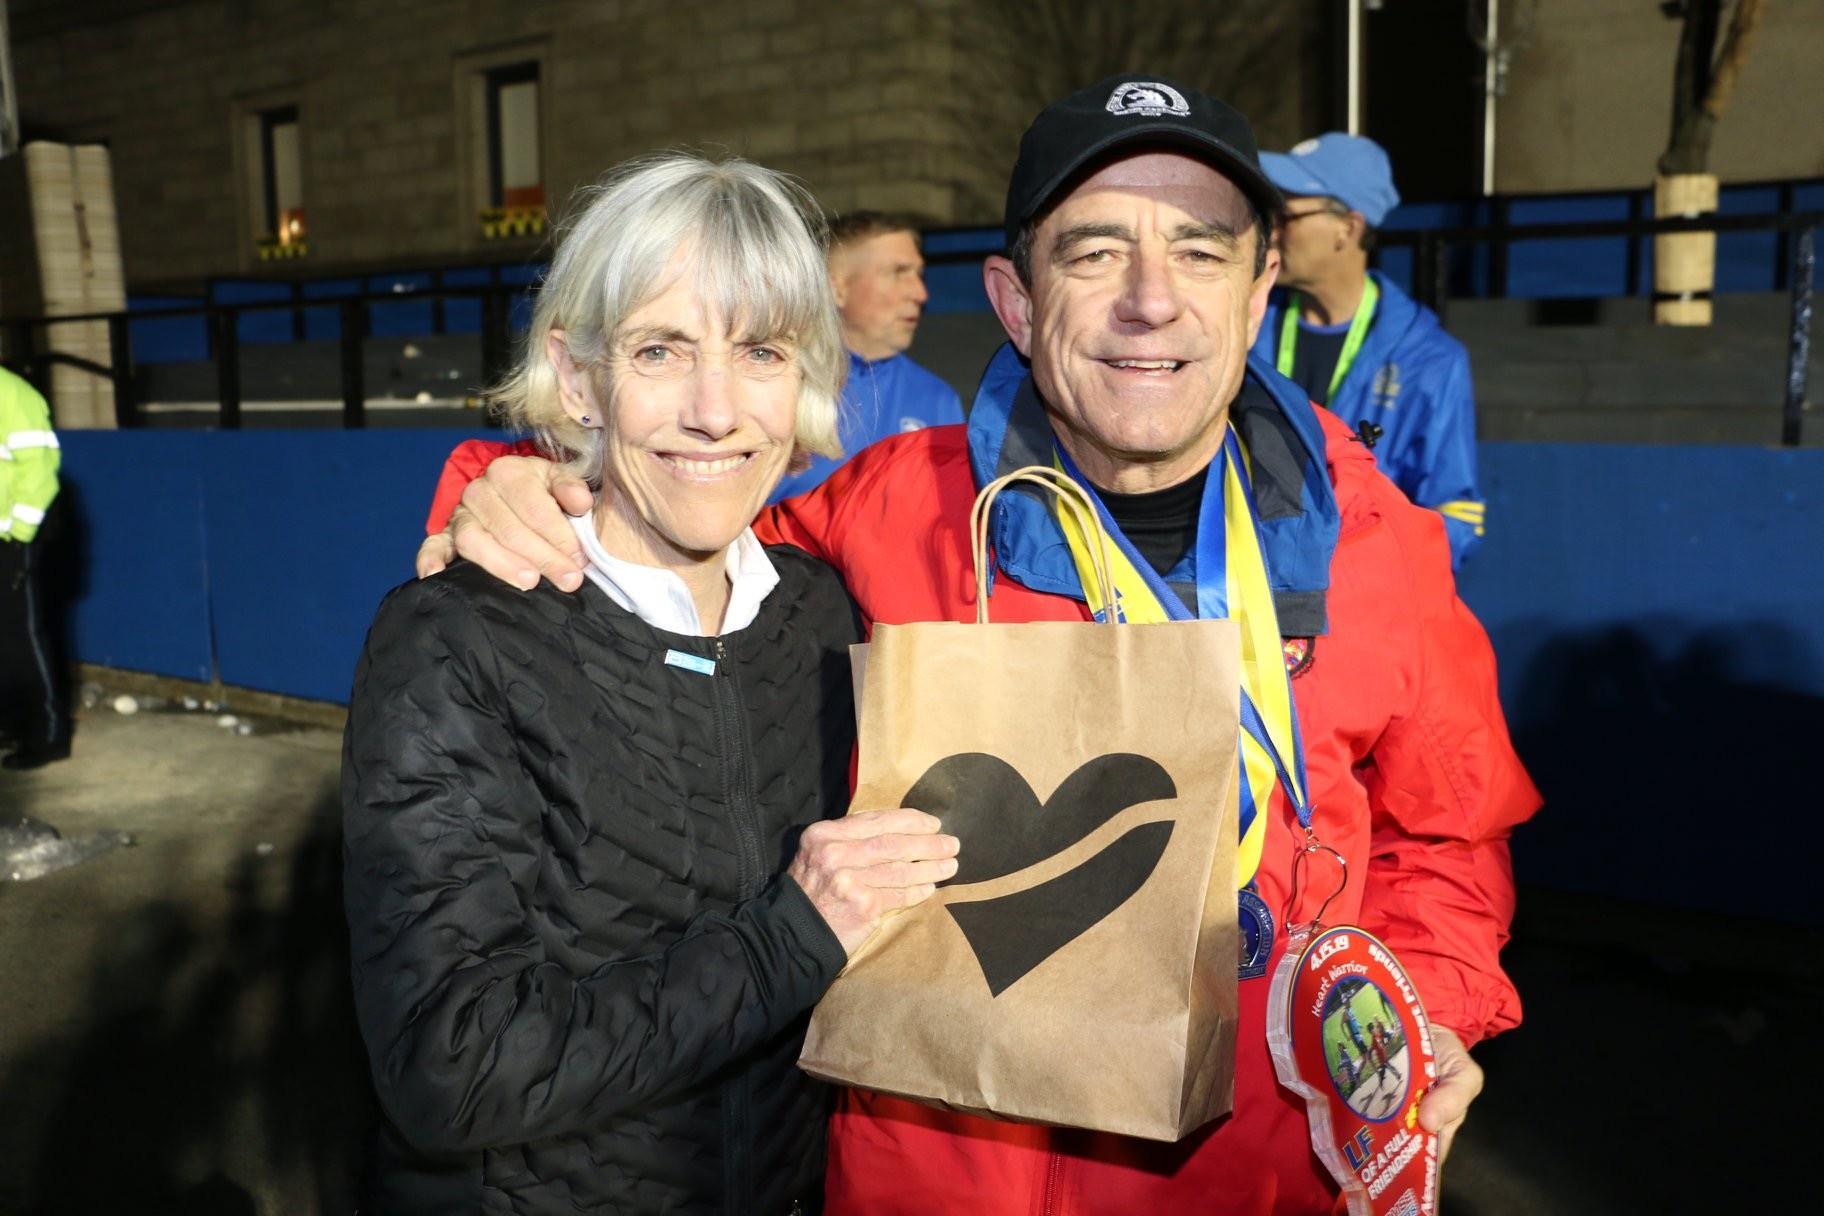 Boston Marathon Race Director David McGillivray runs the course again for the 47th time after having triple by-pass heart surgery six months ago